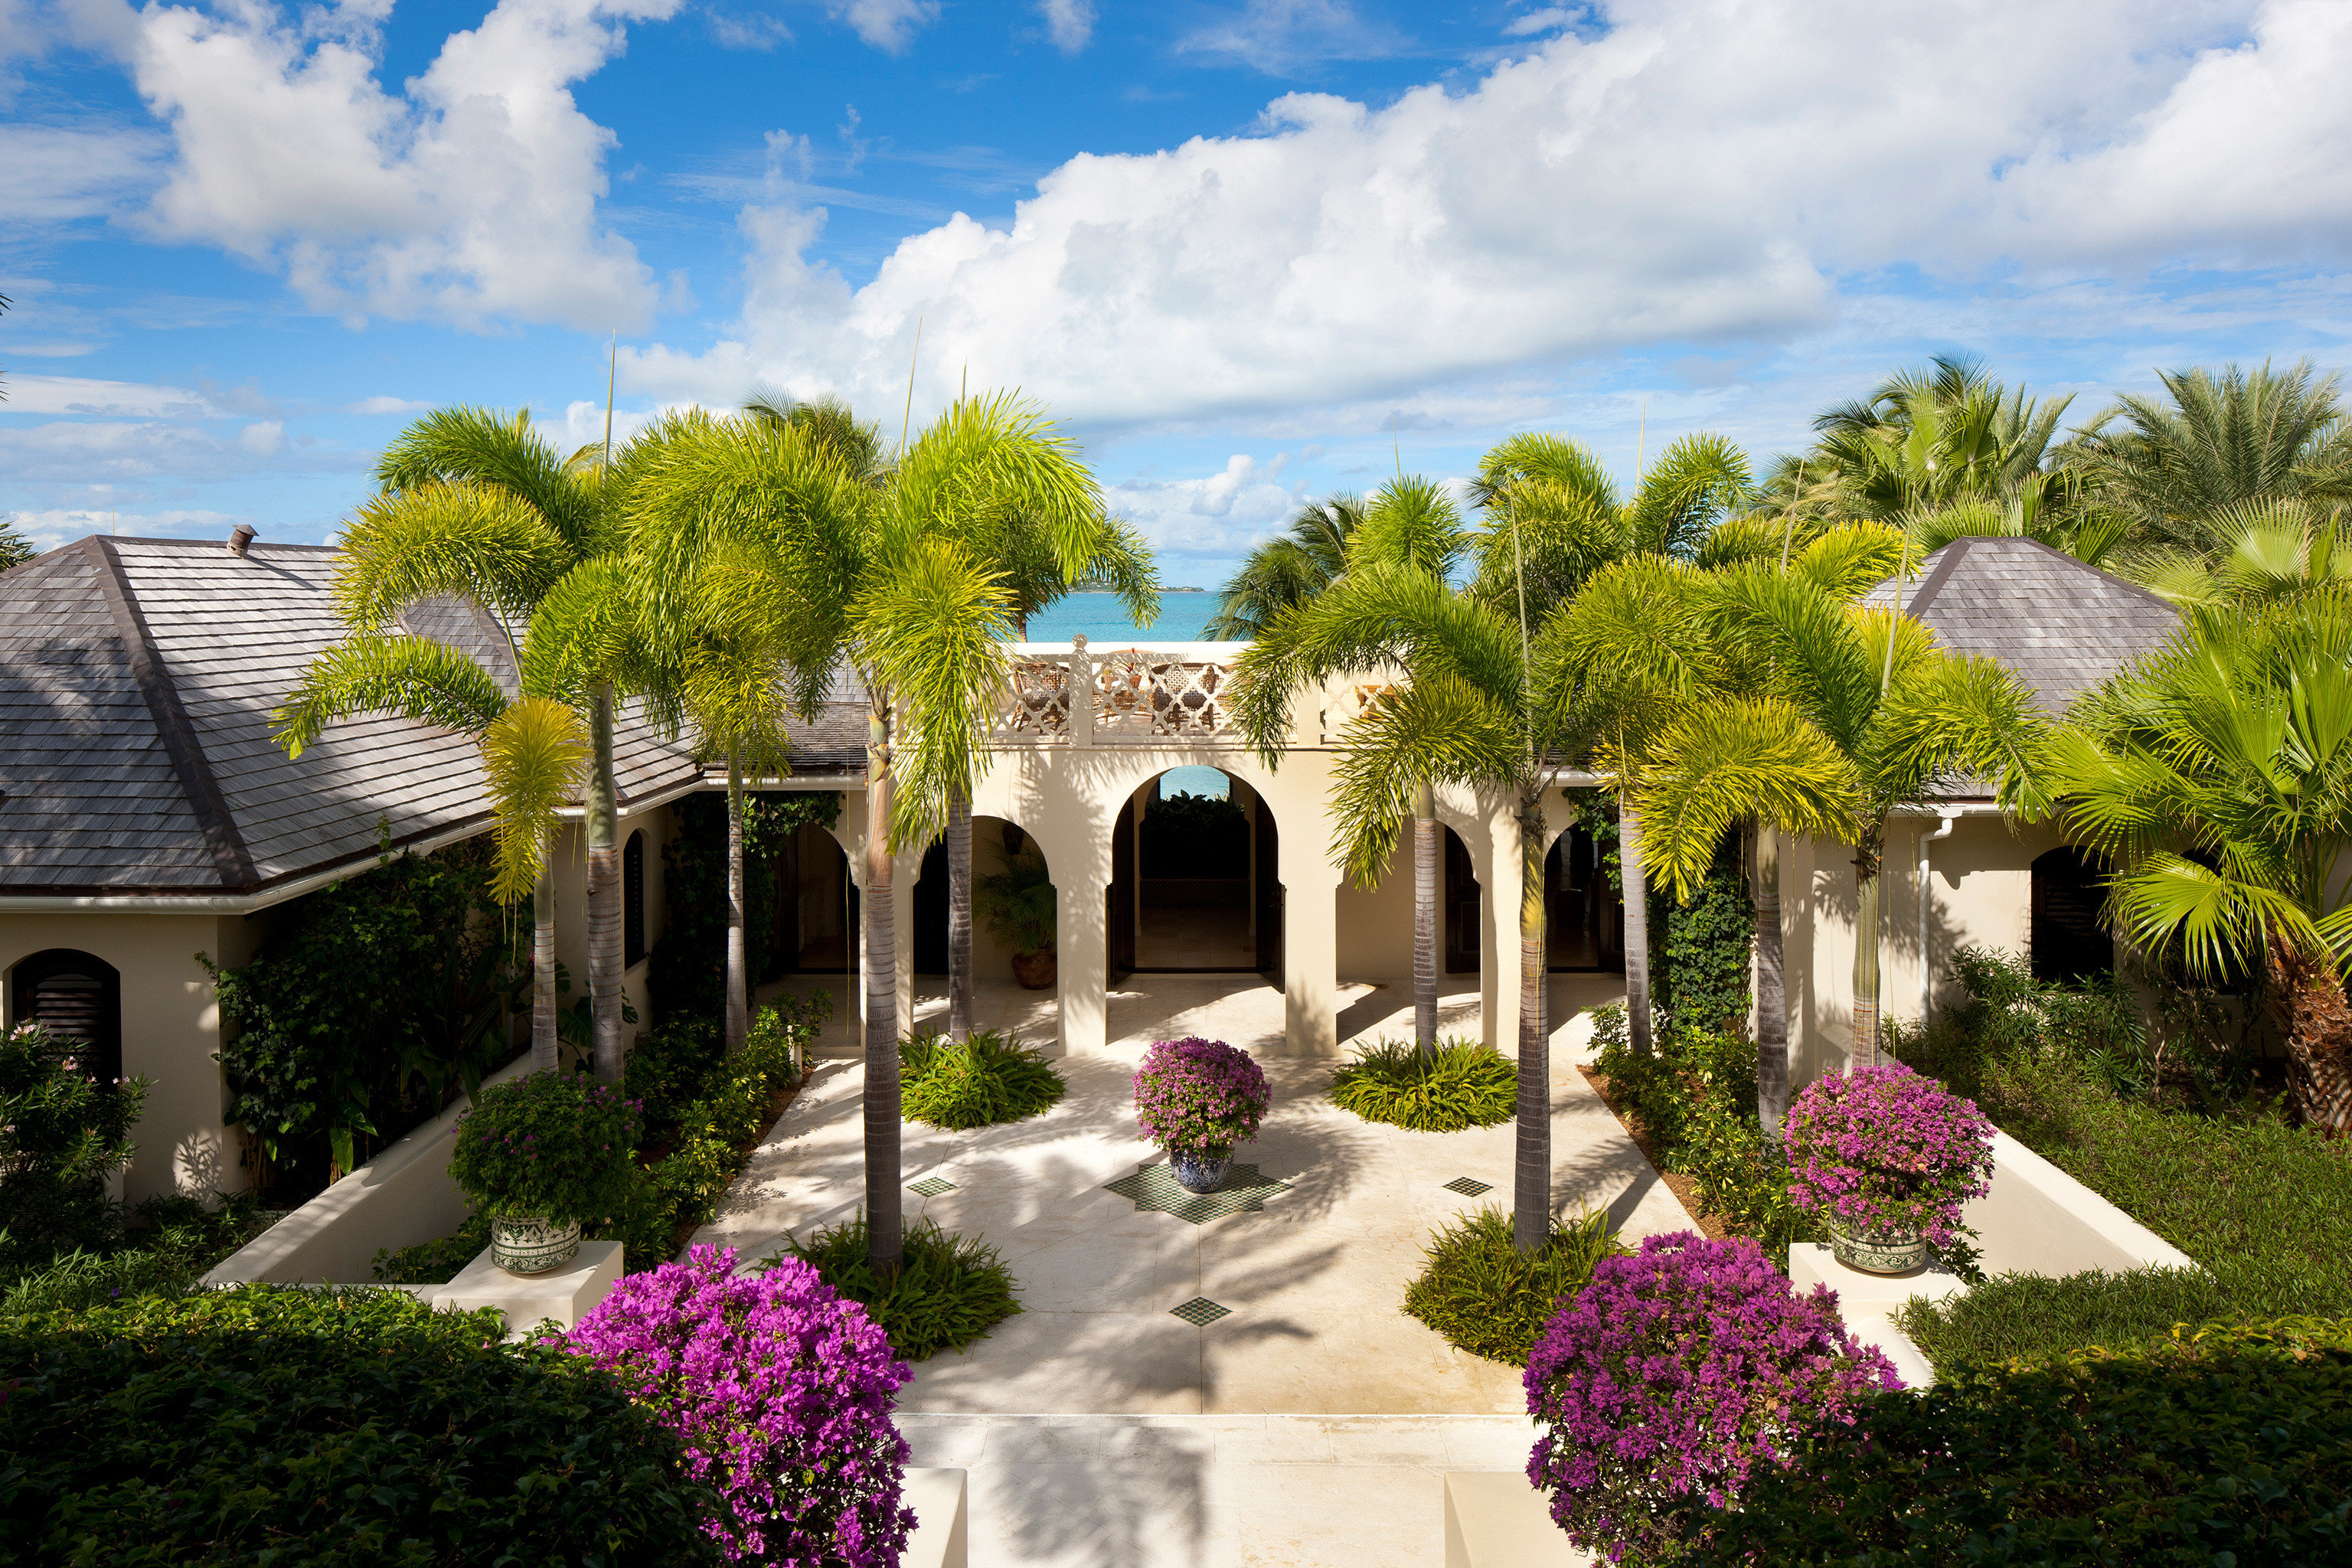 All-inclusive Beach Beachfront Courtyard Exterior Garden Grounds Hotels Island Luxury Resort Trip Ideas Waterfront tree sky flower property flora house home mansion Villa hacienda backyard plant yard lawn Village surrounded stone